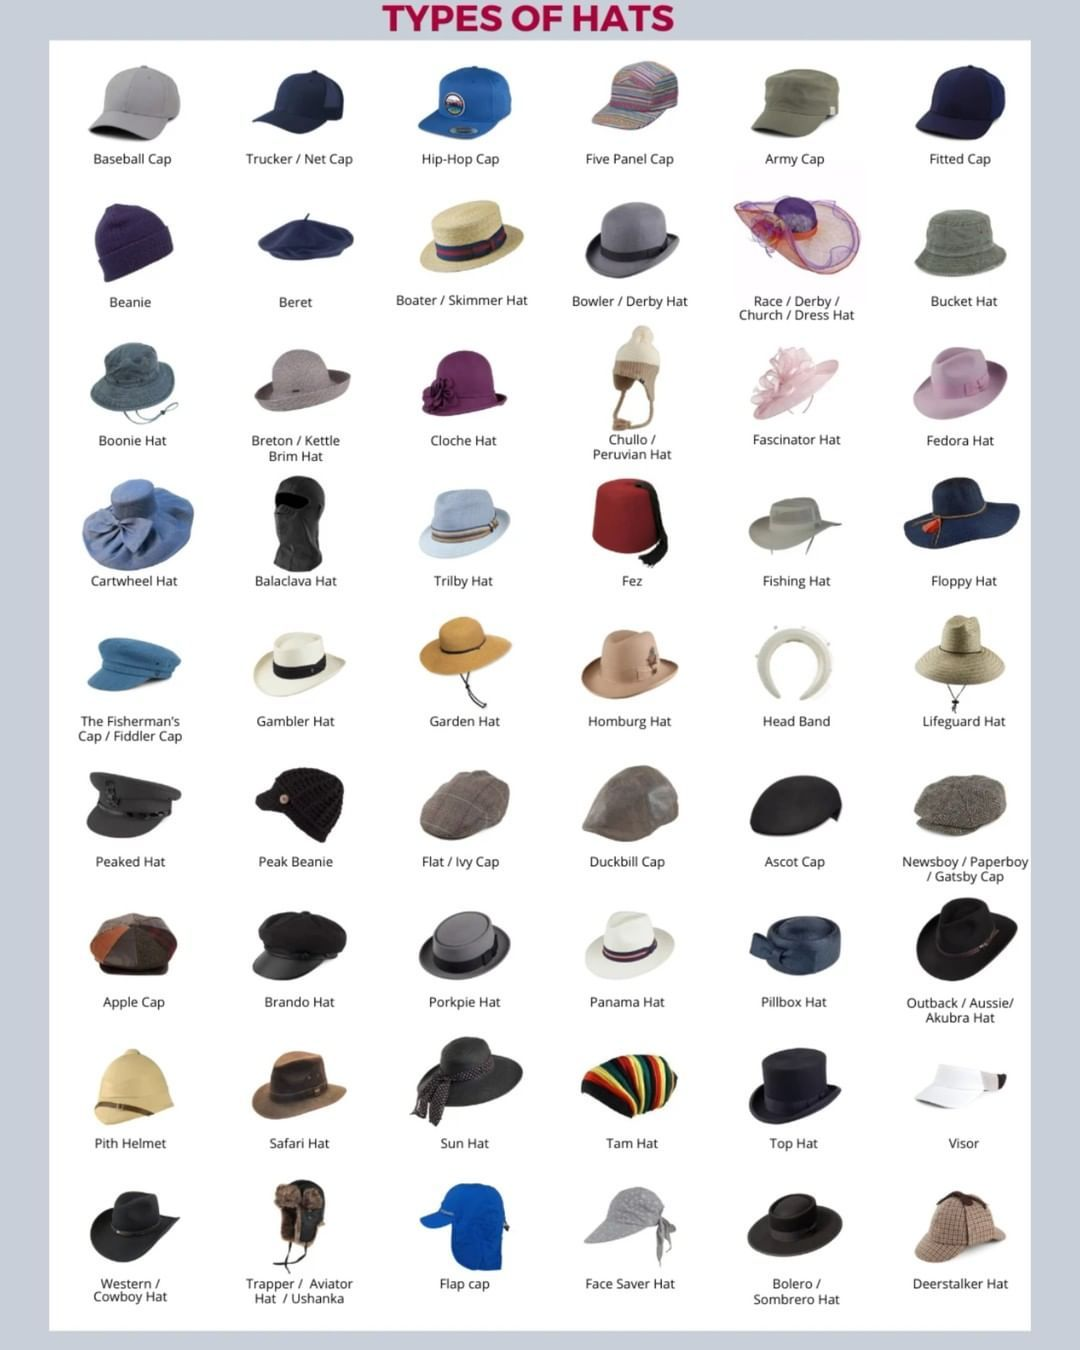 What Are The Types Of Hats